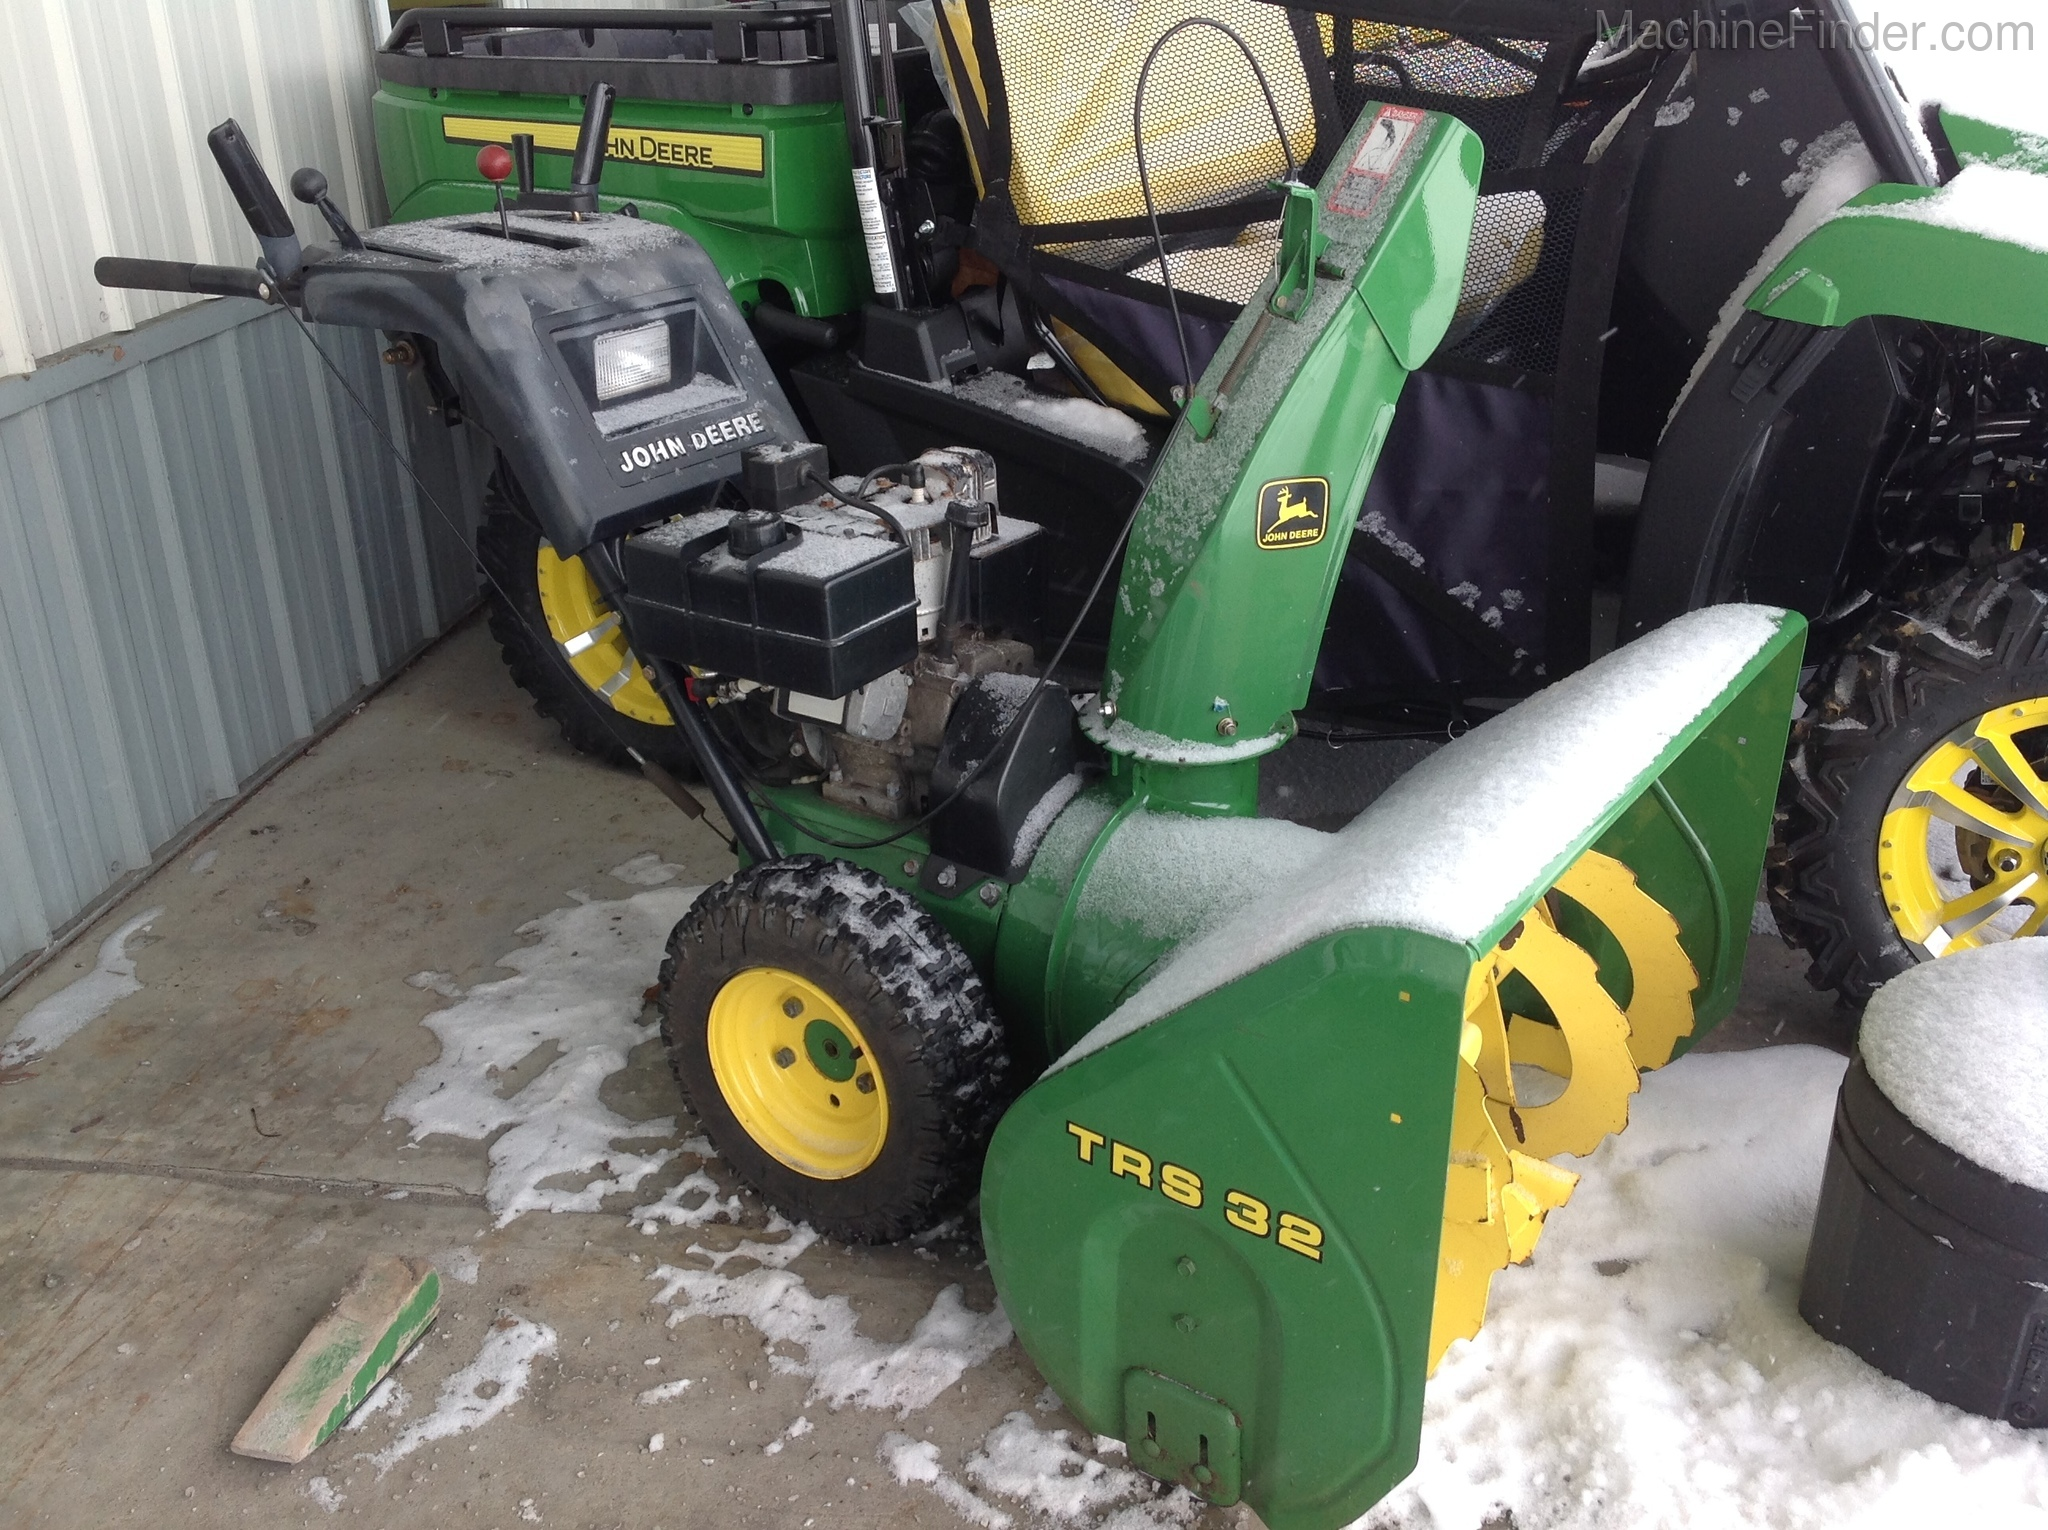 John Deere Trs24 Parts Diagram Electrical Wiring Diagrams 826 Snowblower Snow Blower Trs 32 Circuit And Lx178